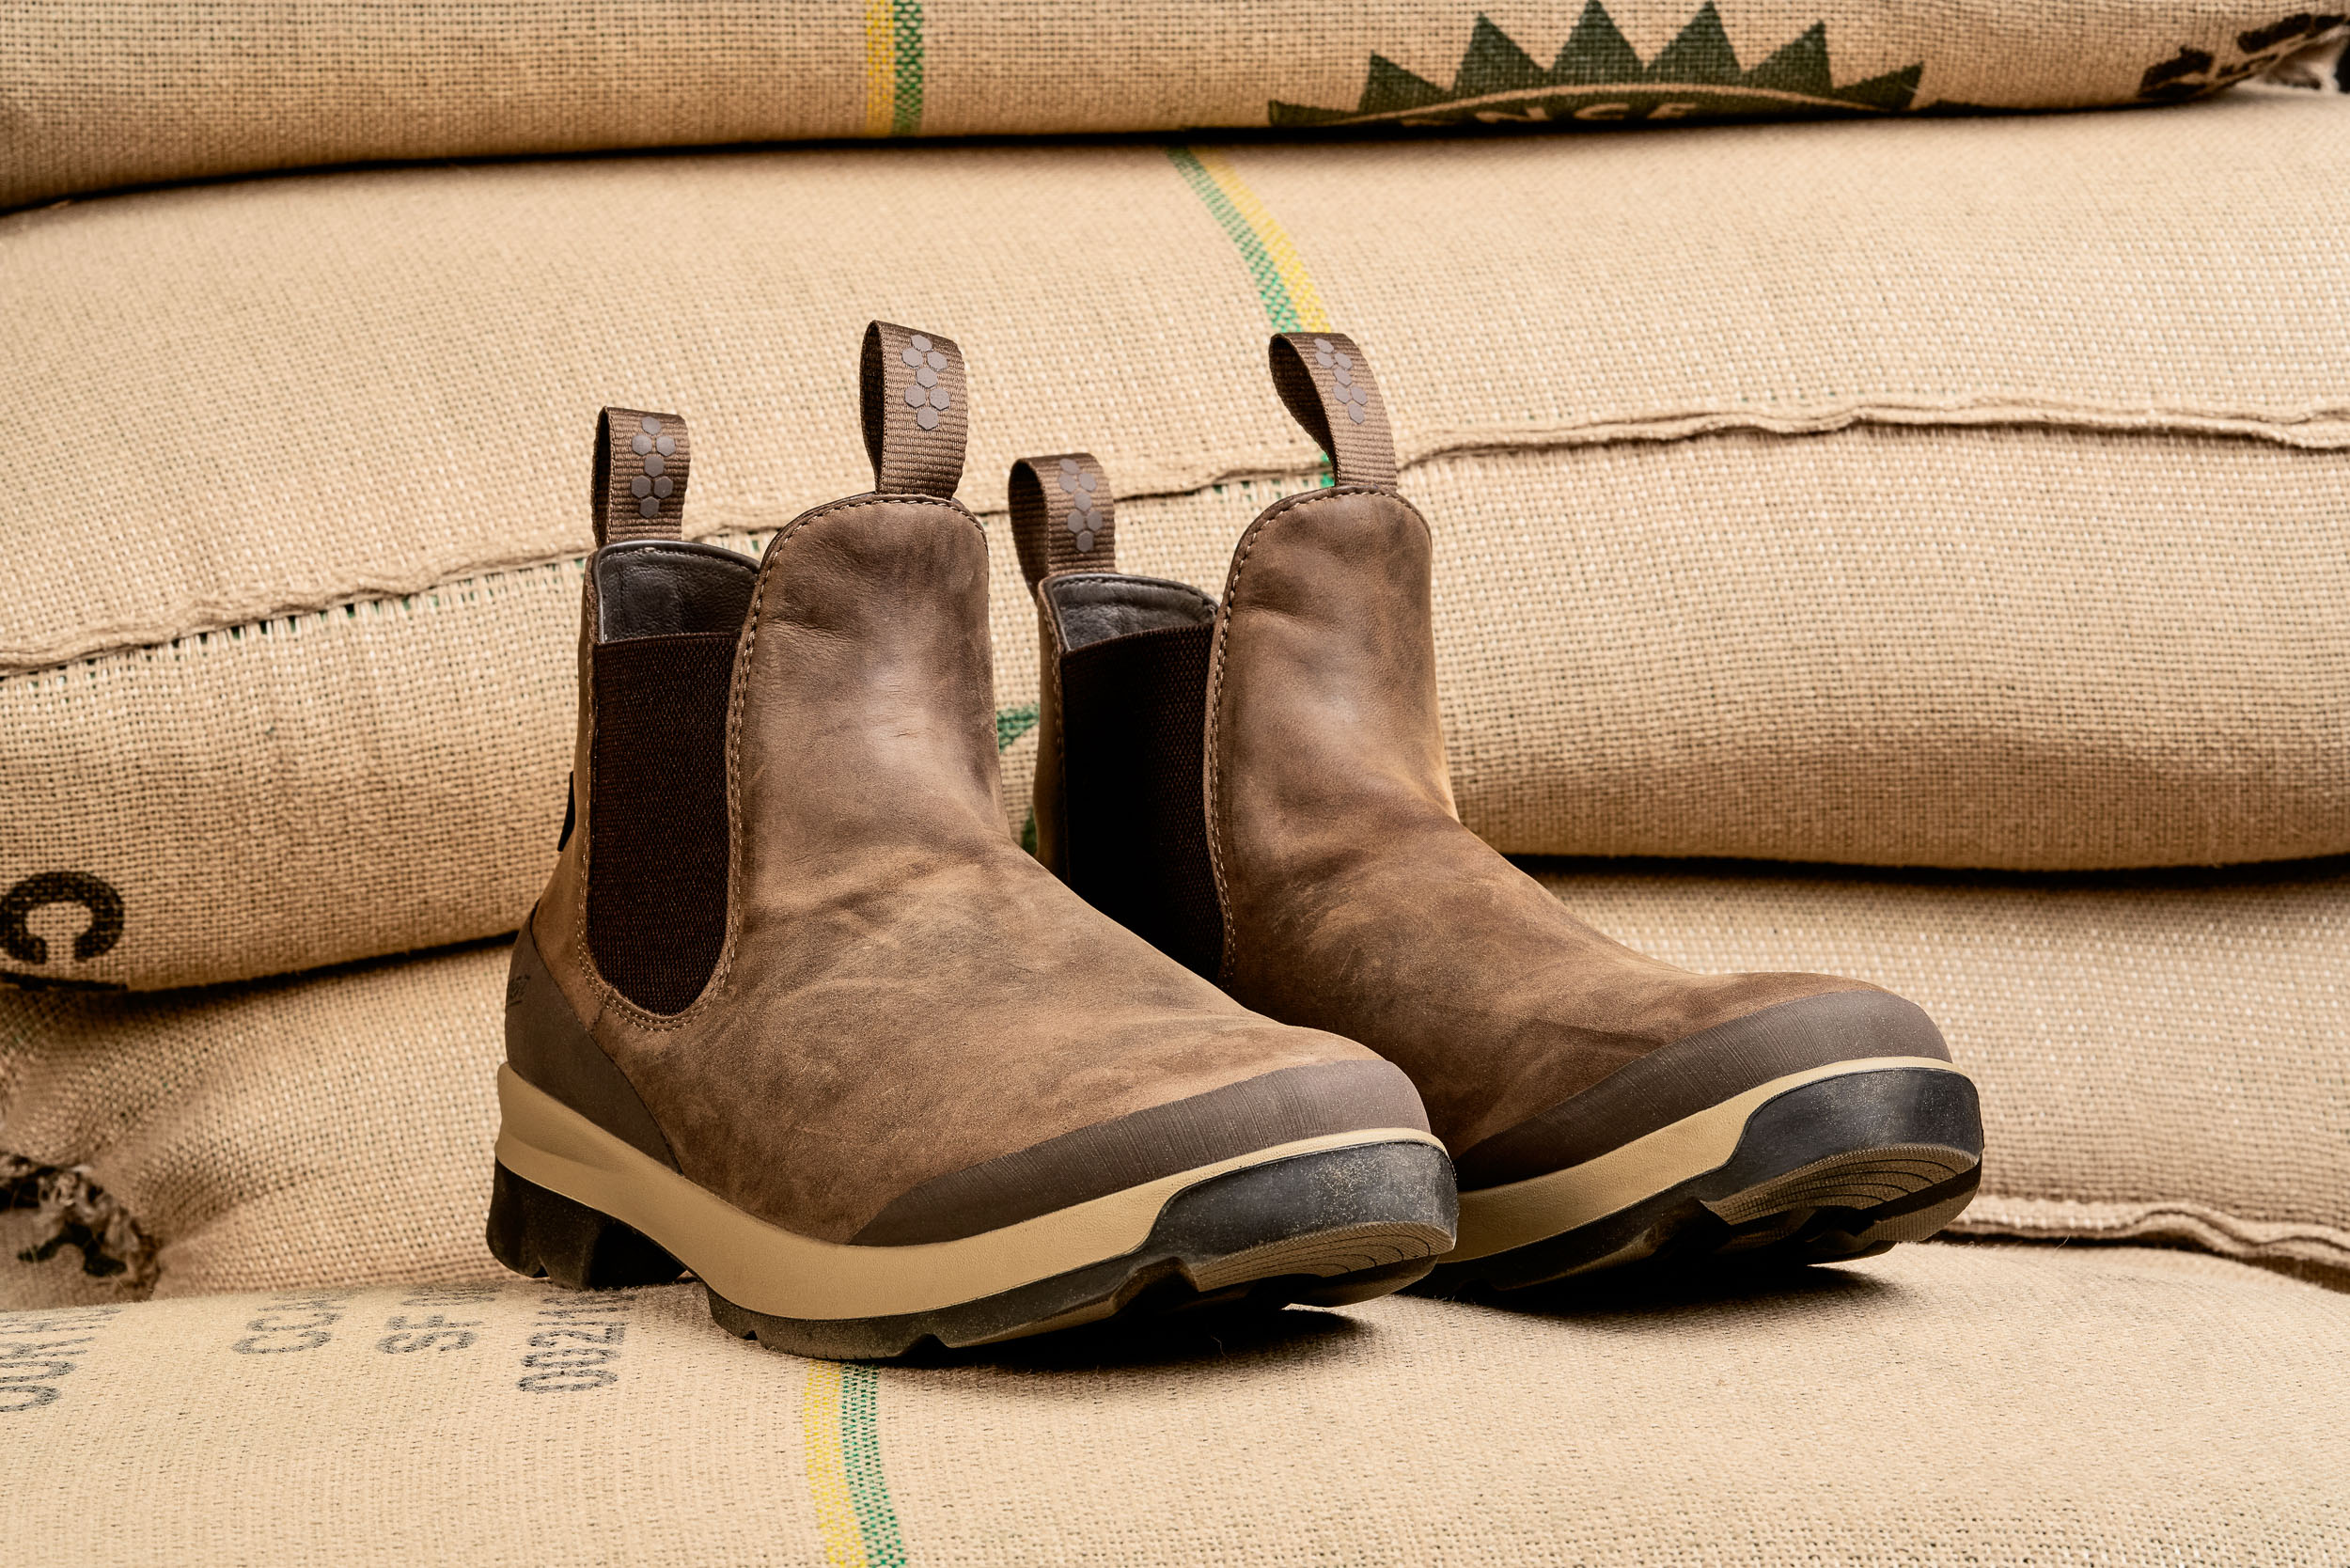 Product photo of the Danner Pub Garden on sacks of un roasted coffee at Coava